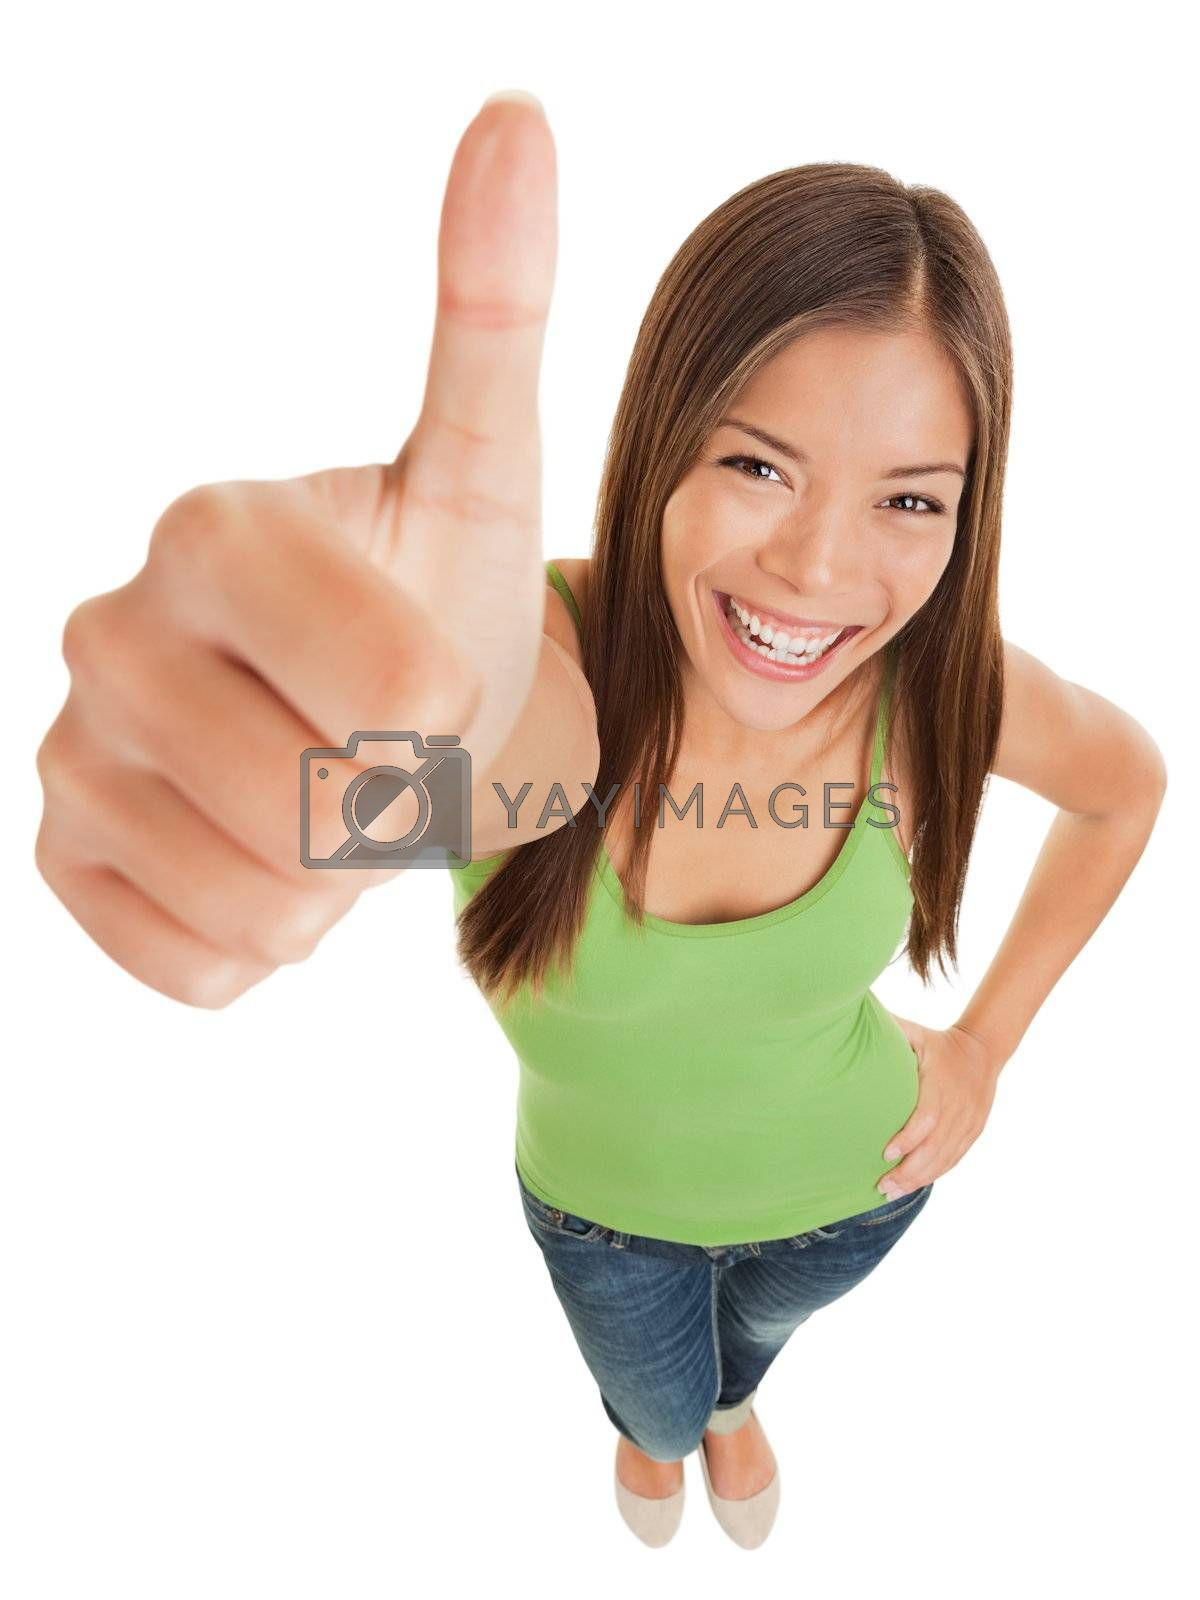 Fun high angle portrait of an attractive vivacious young woman giving a big thumbs up of success and approval isolated on white